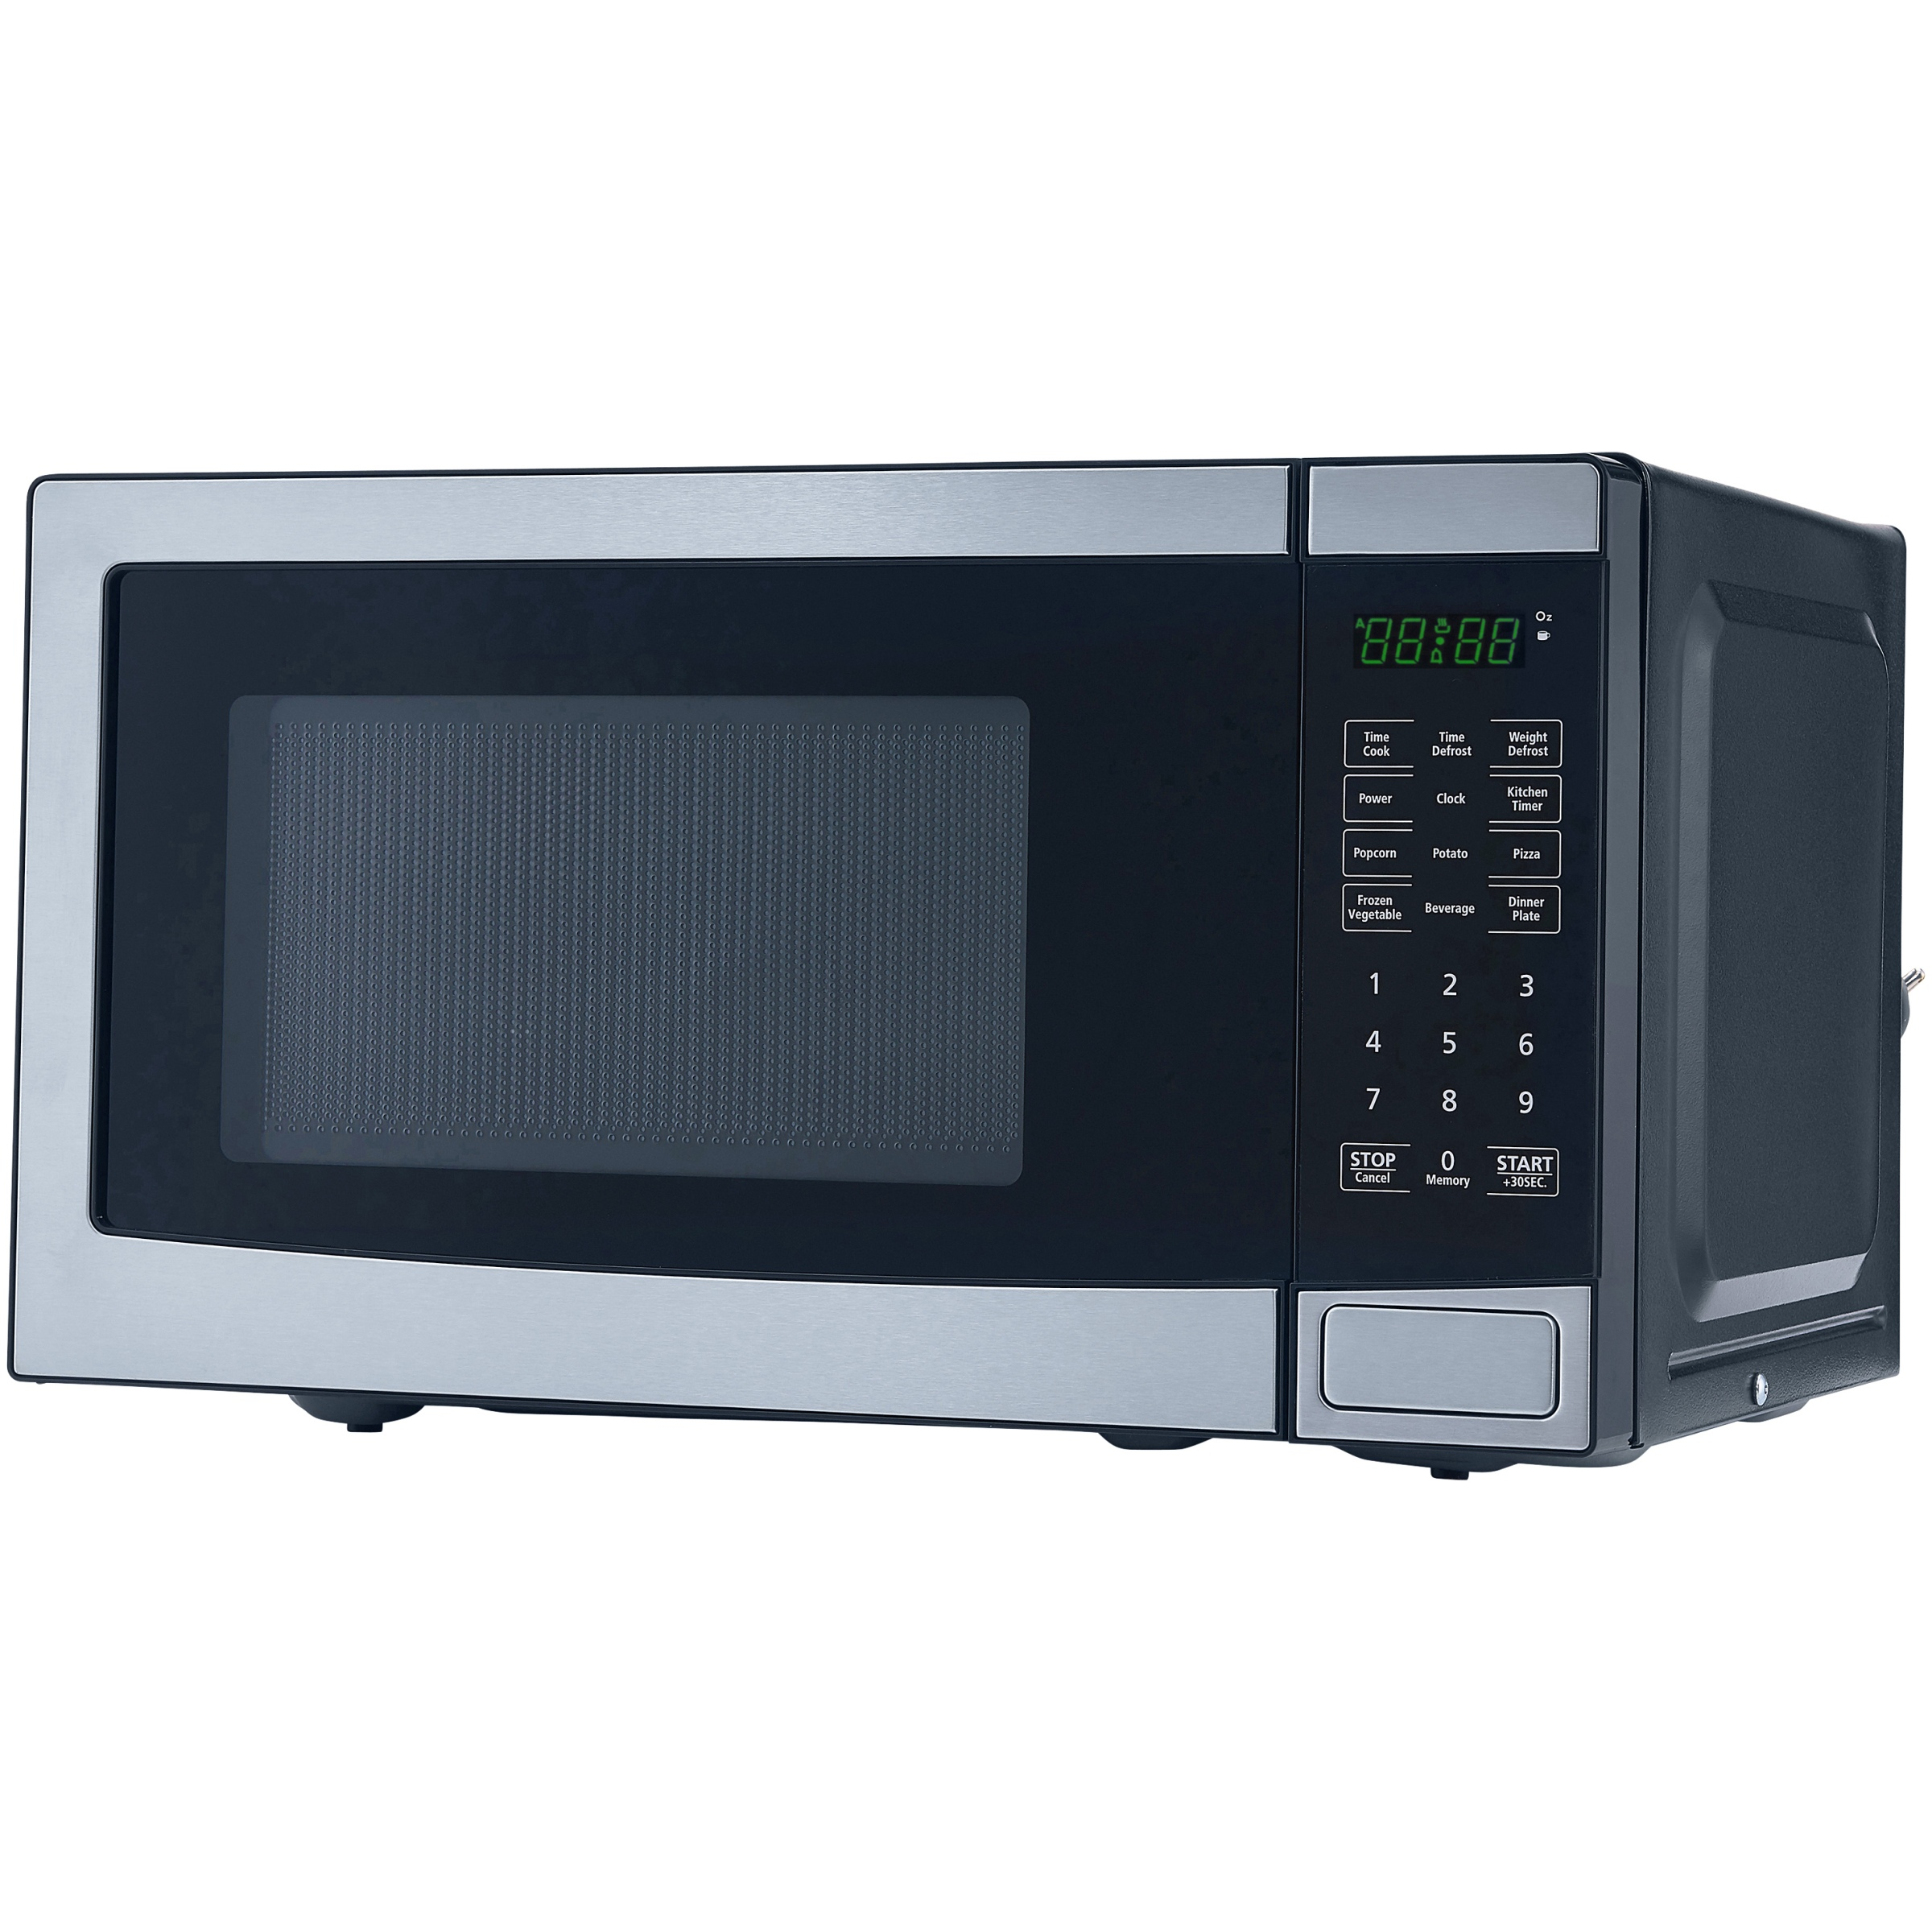 Mainstays 0.7 Cu. Ft. 700W Stainless Steel Microwave with 10 Power Levels